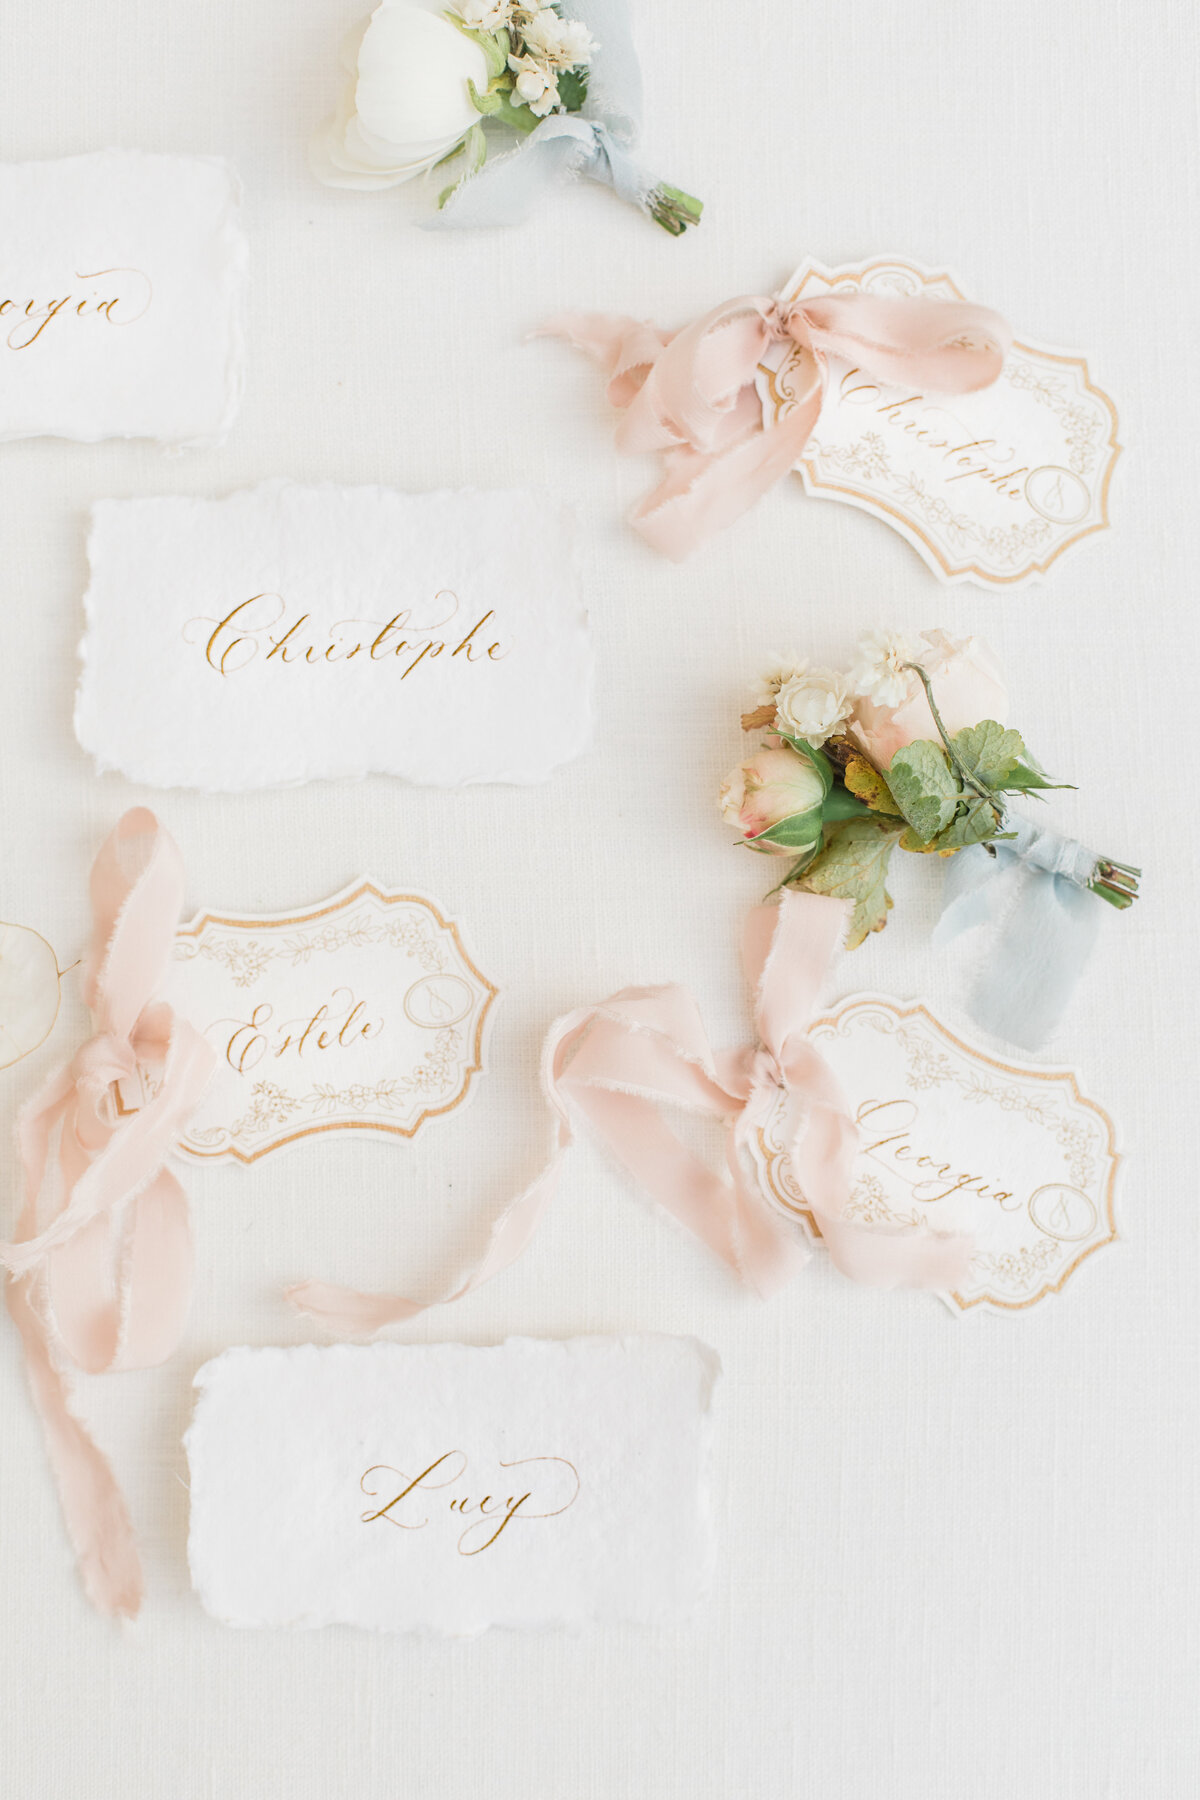 name place cards with gold calligraphy at champagne france wedding by costola photography